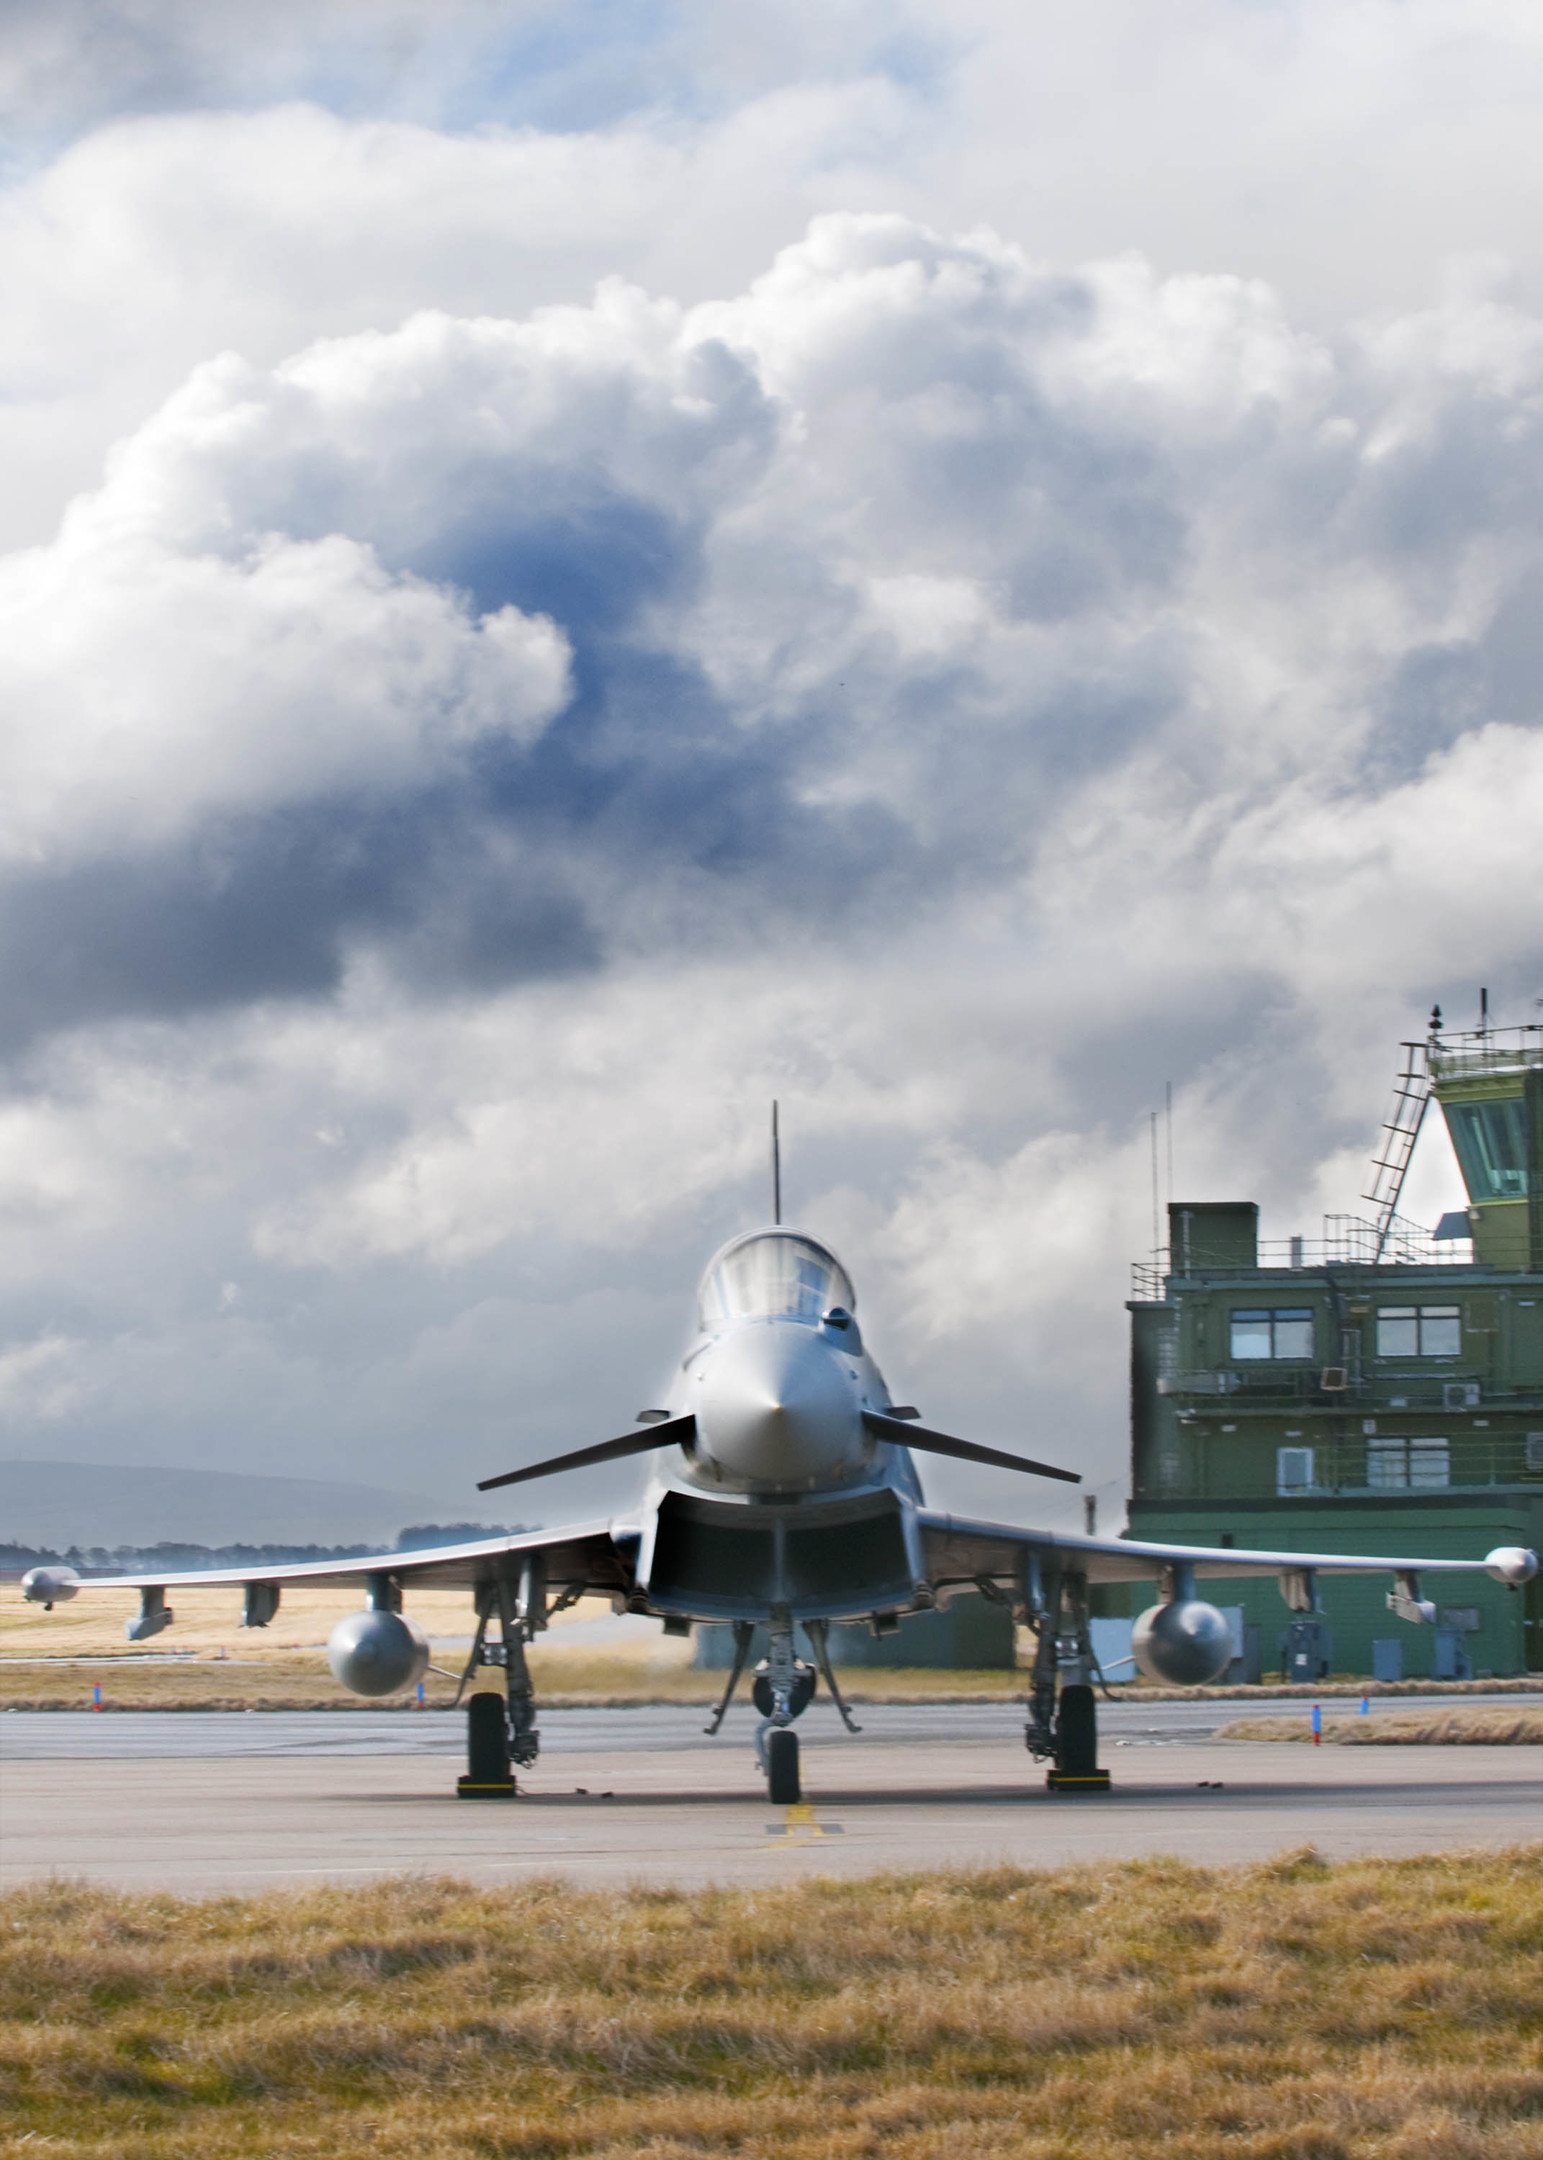 The Number 1 (Fighter) Squadron observed one of the busiest periods in its history since relocating to Moray.